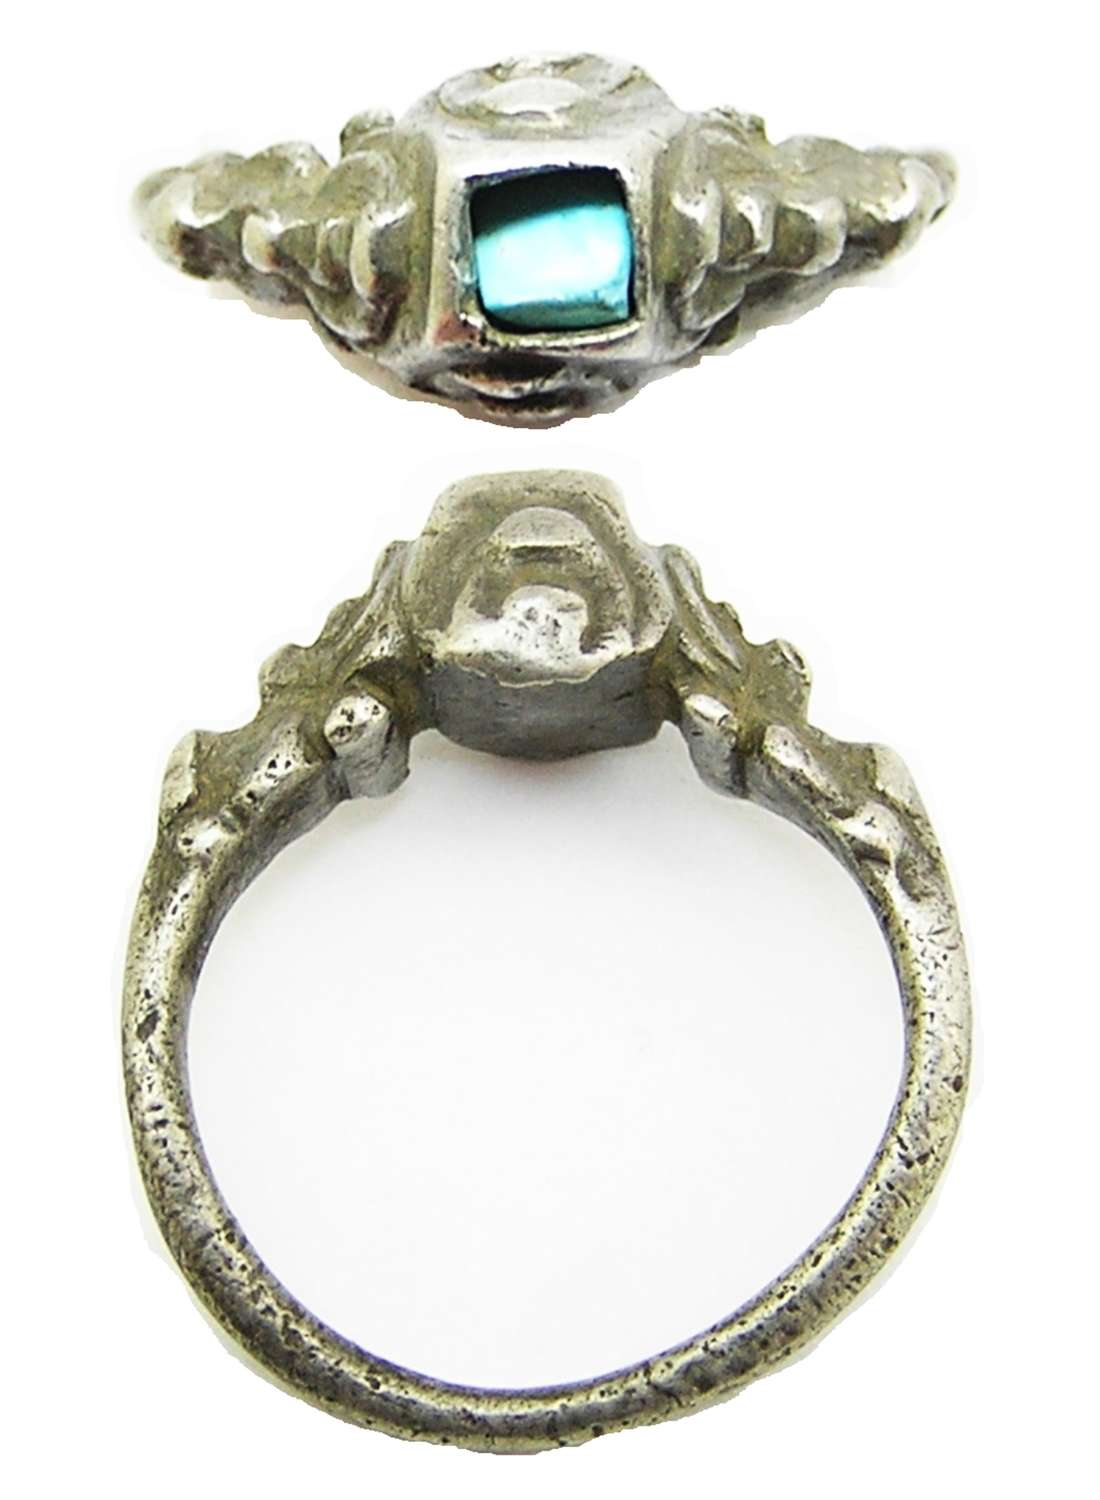 Tudor / Renaissance silver and turquoise finger ring